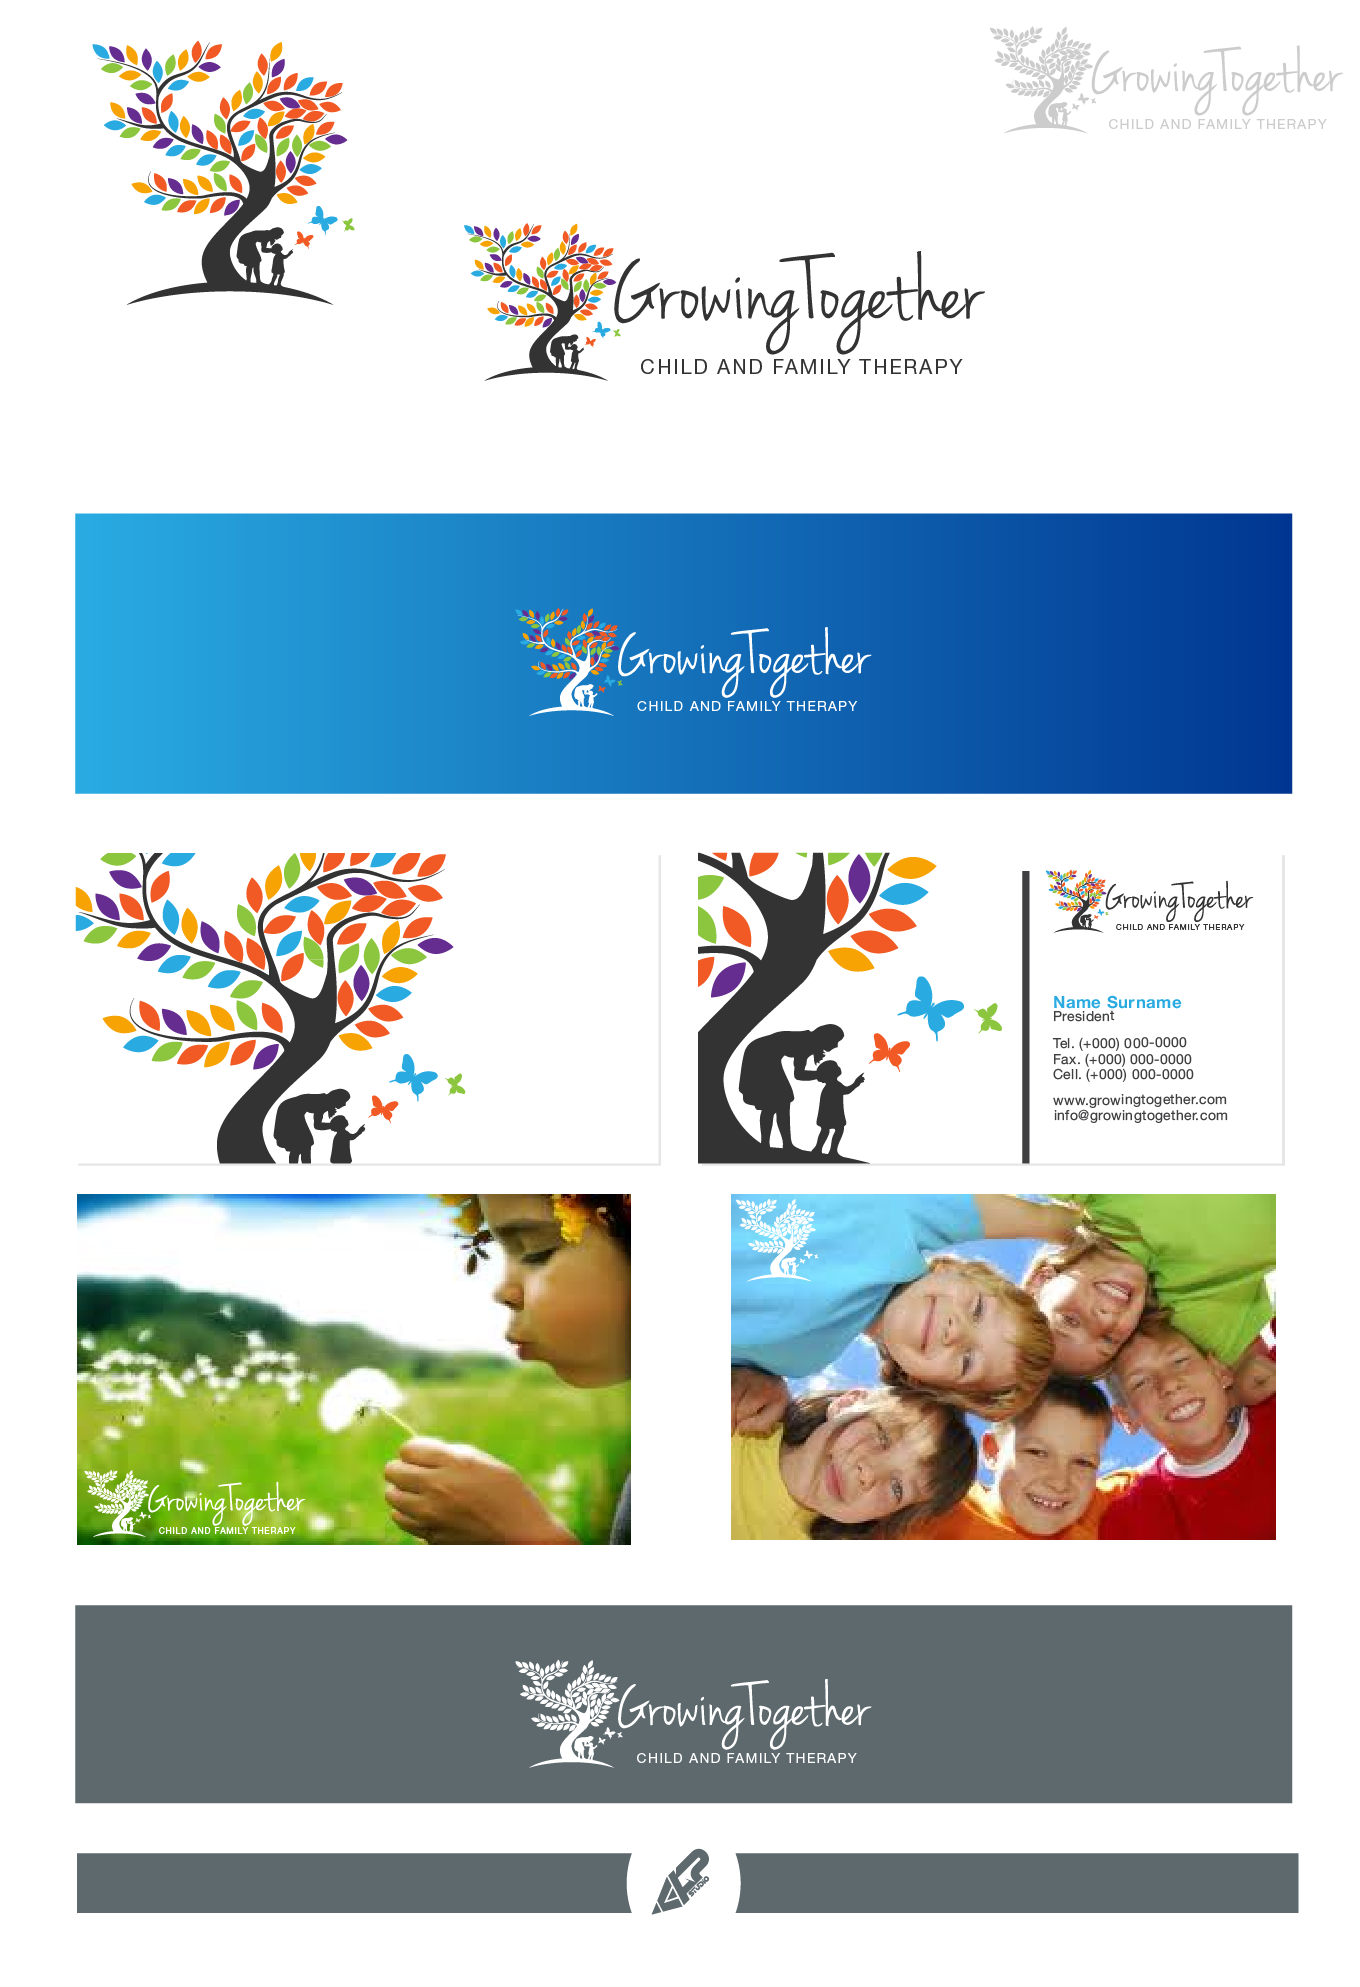 Growing Together Psychology needs a new logo